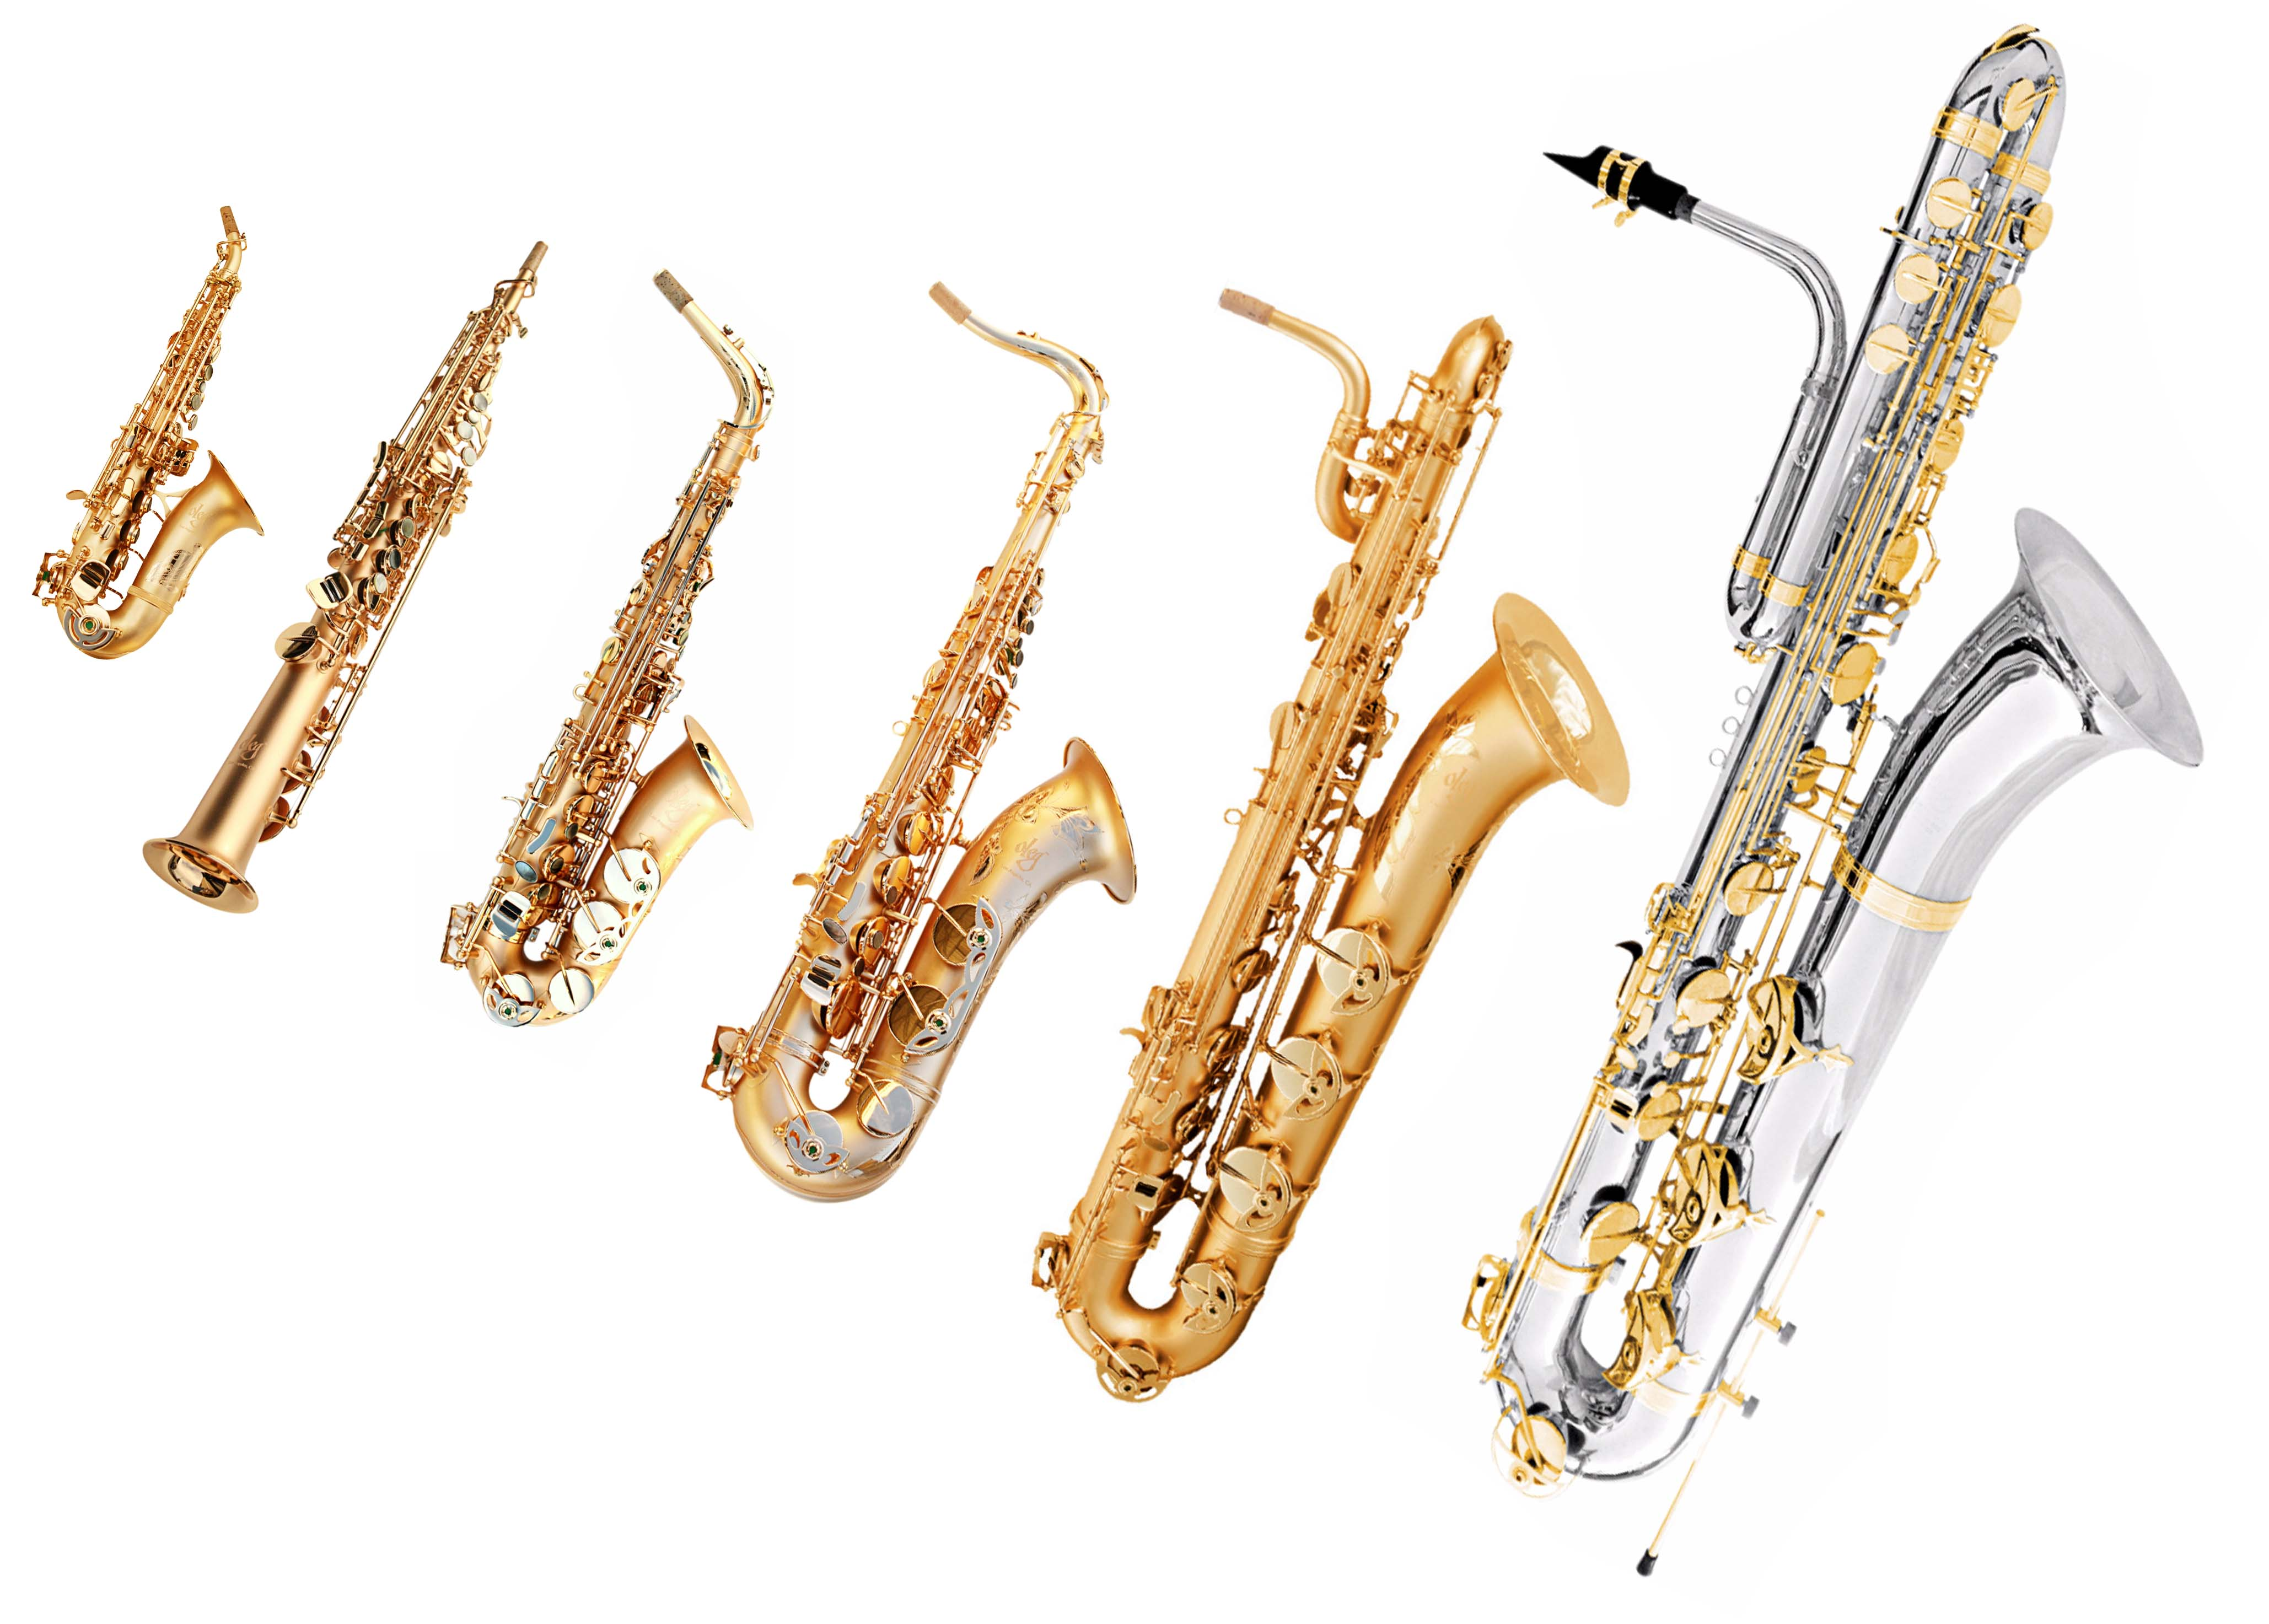 Saxophone Backgrounds on Wallpapers Vista